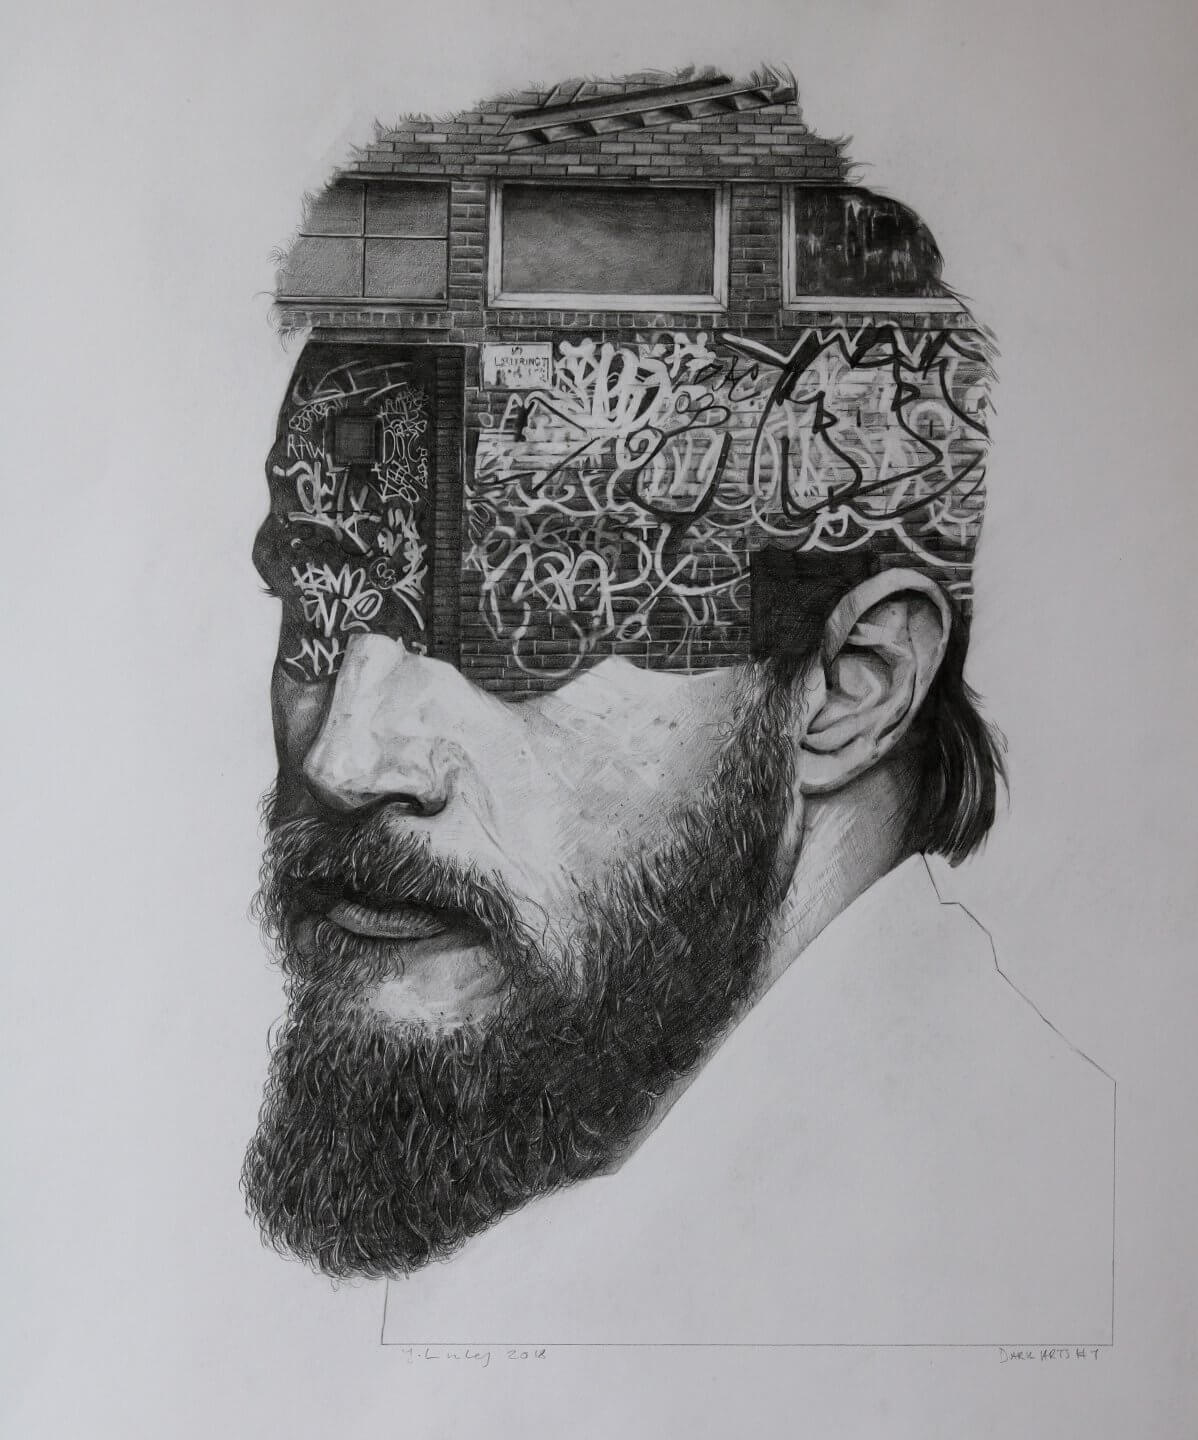 Galerie Benjamin Eck München Jamie Linley, Dark Arts #2, 2018